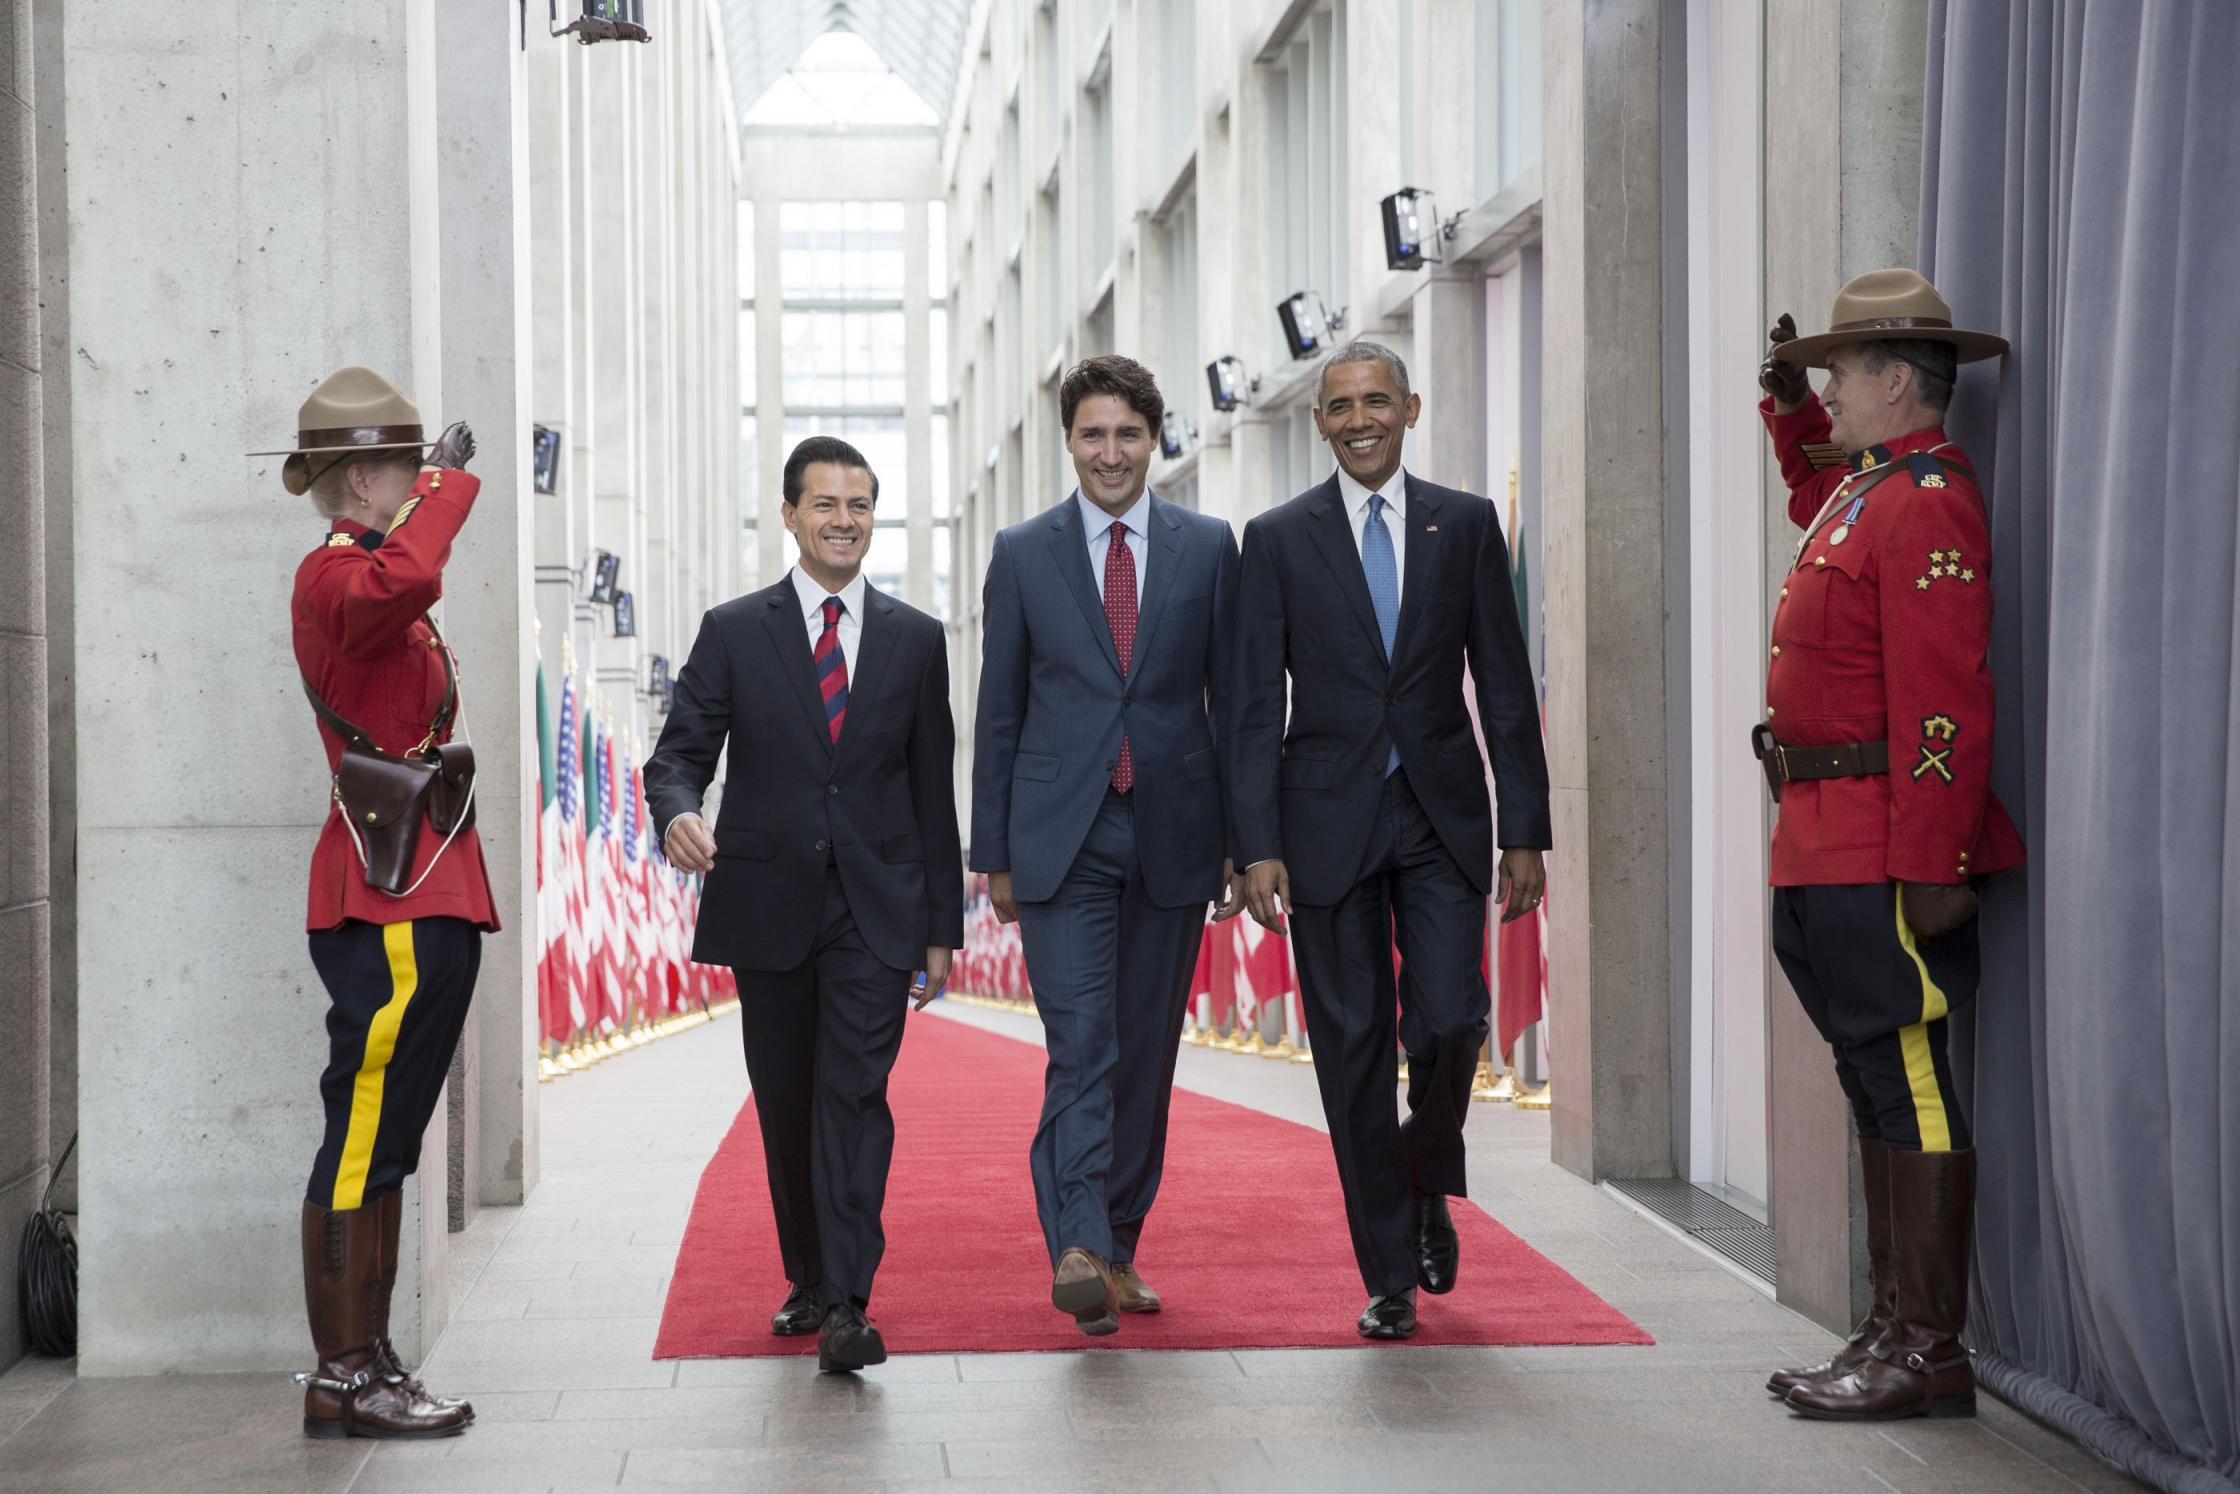 President Barack Obama and Prime Minister Justin Trudeau of Canada greet President Enrique Peña Nieto of Mexico upon arrival for the North American Leaders' Summit at the National Gallery of Canada in Ottawa, Canada, June 29, 2016. (Official White House Photo by Lawrence Jackson)